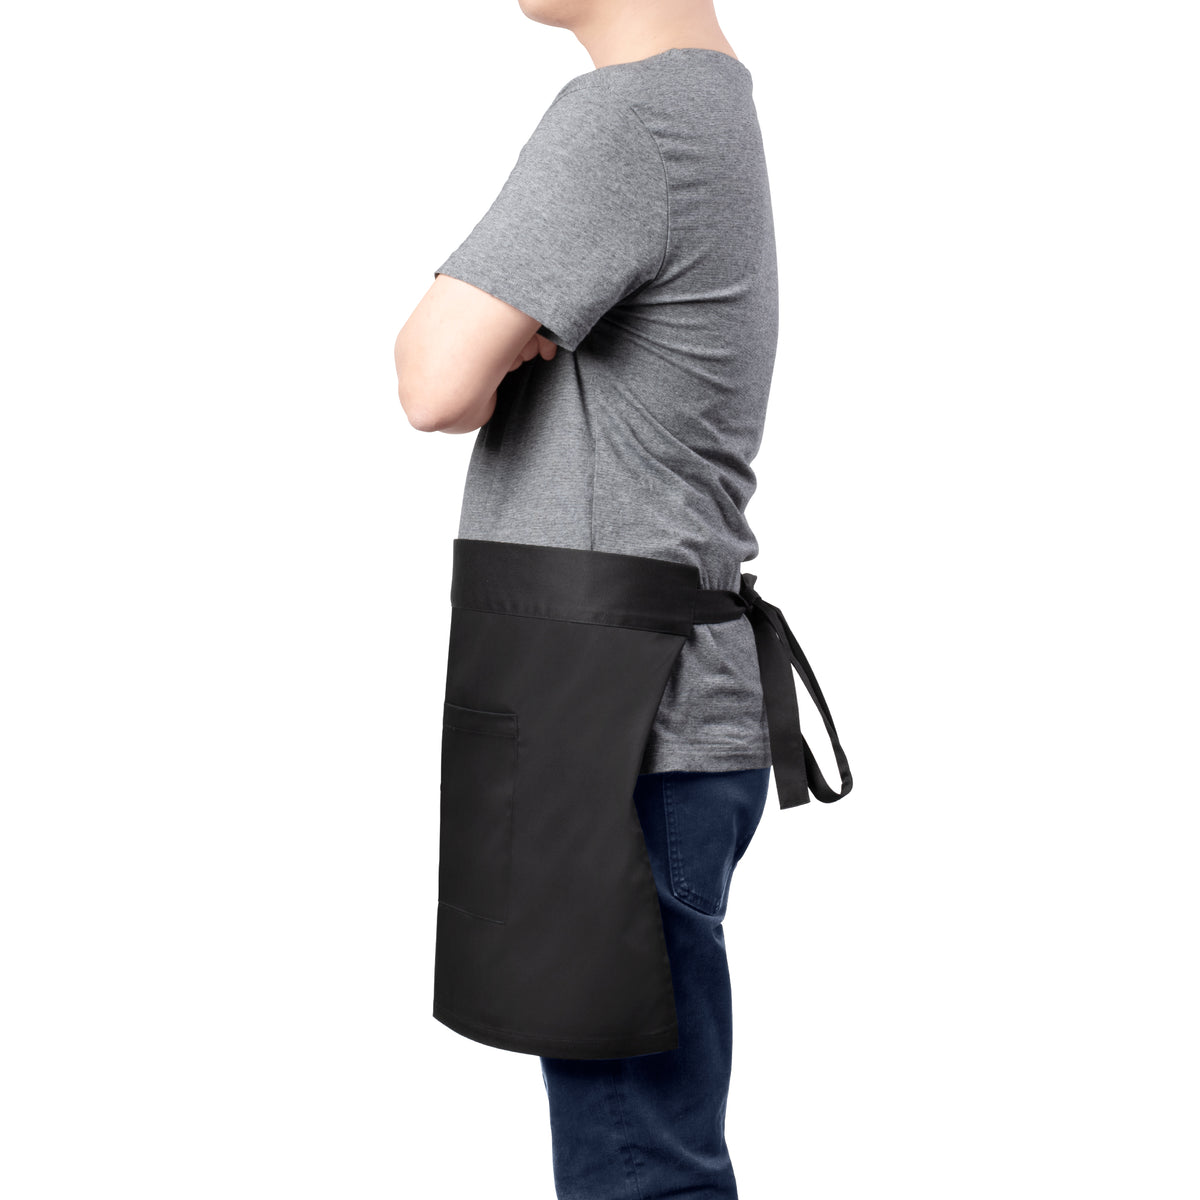 Barista Half Apron with 2 Front Pockets - Barista Essentials by EspressoWorks